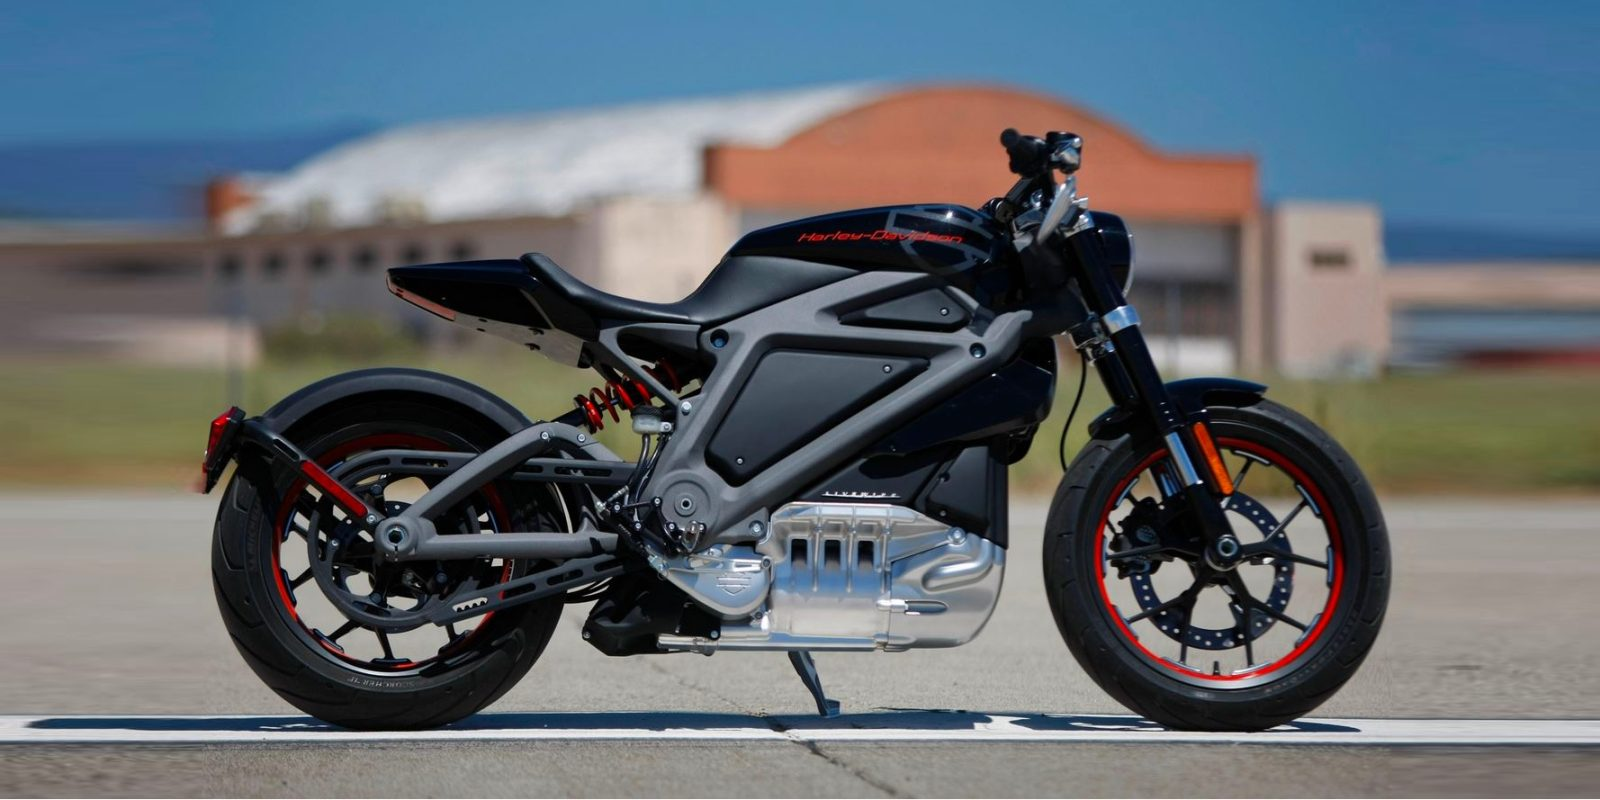 Harley Davidson Announces Plans For Multiple Electric Motorcycles And Even An Bicycle